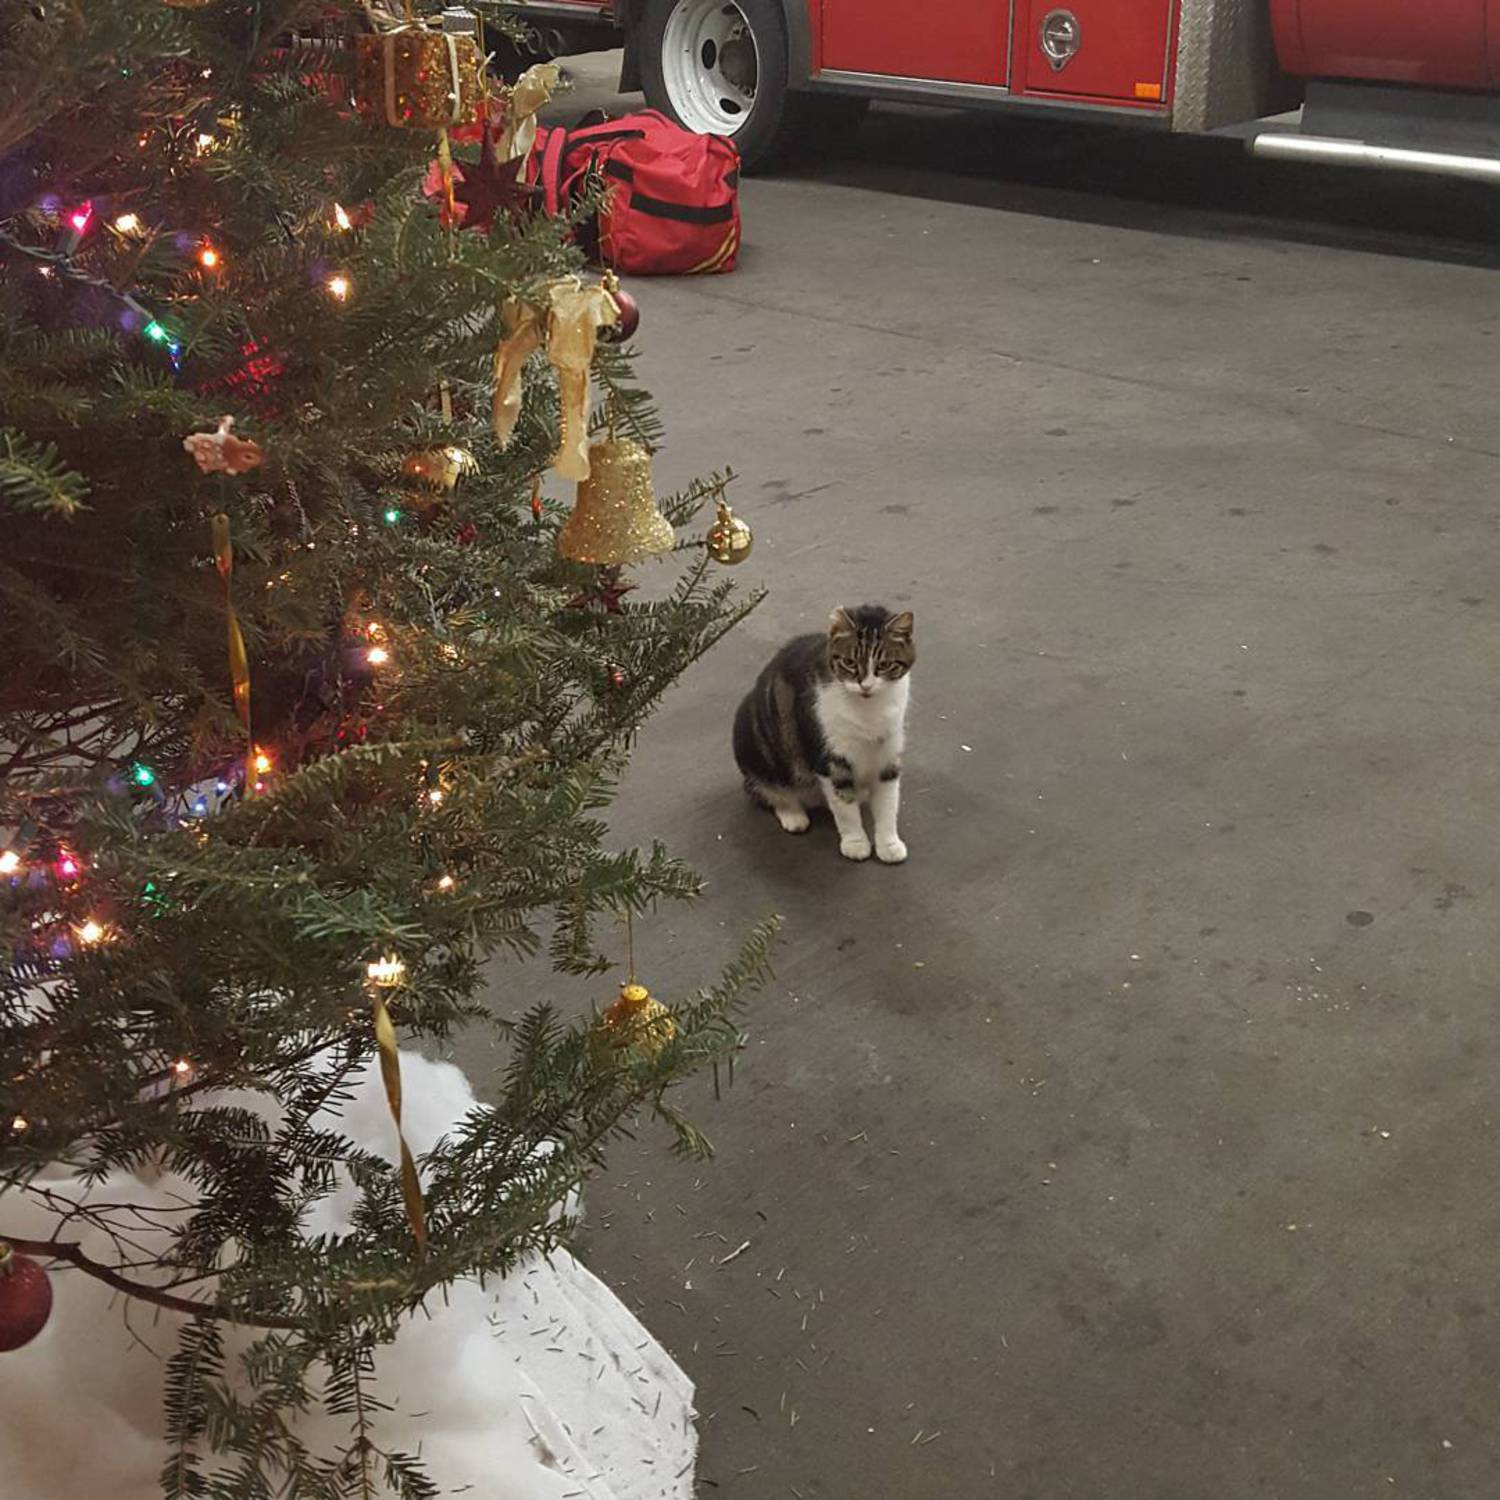 The day after Christmas and all of my shiny new toys have been carefully tossed into their respective hiding places. I hope your holidays were equally successful!  #whowillretrievethemformenow  #merrychristmas /#happyholidays #mytoys #cats #catsofinstagram #station57 #kitty #meow